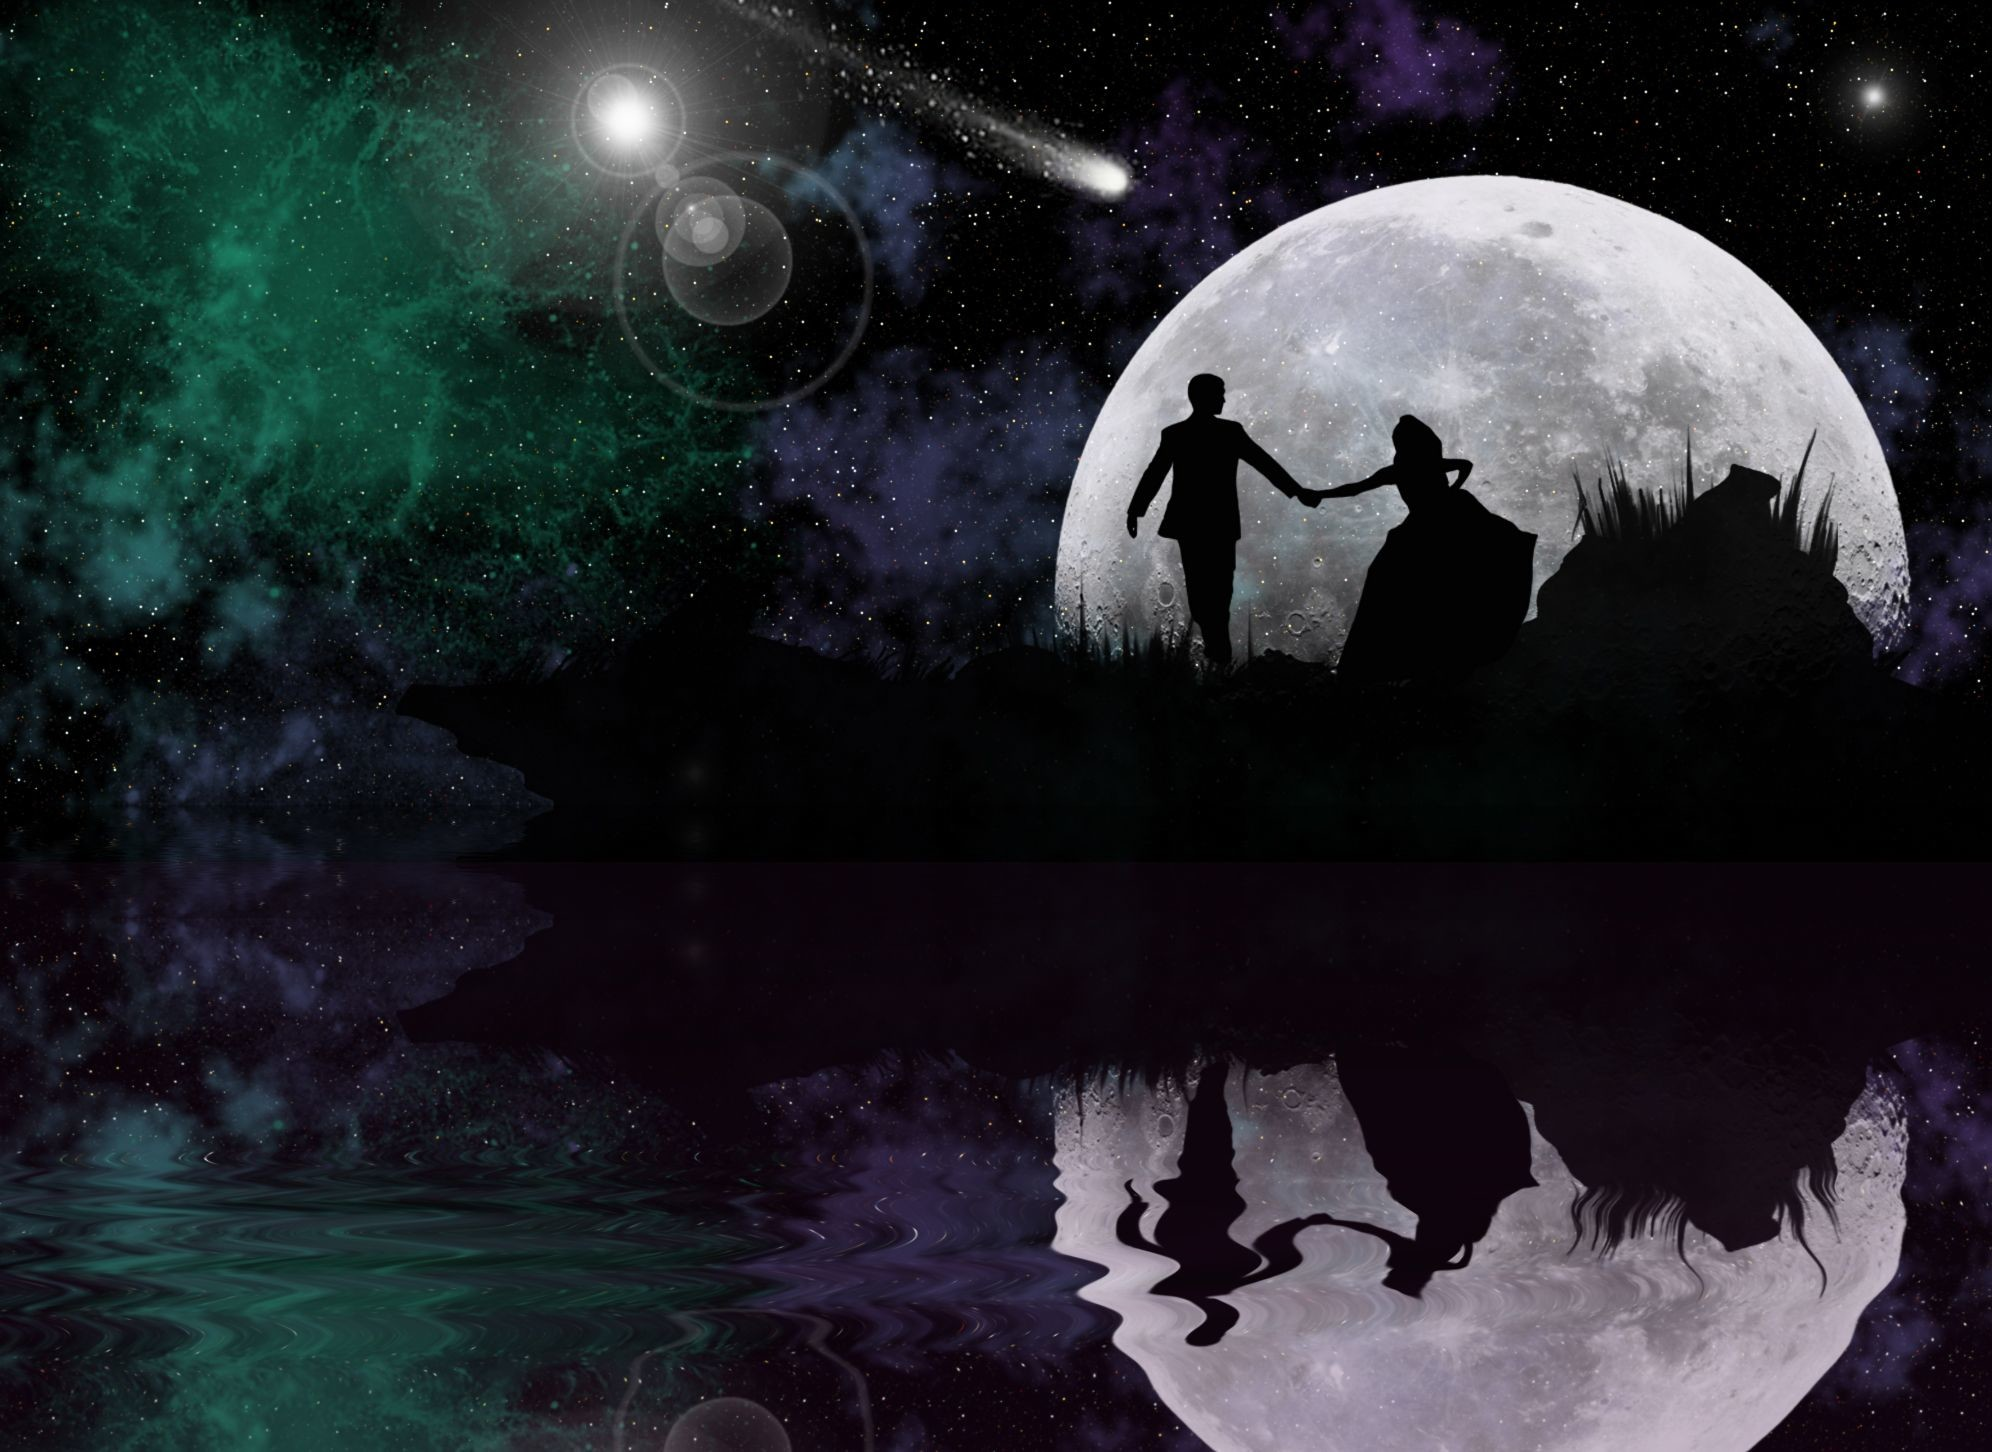 Res: 1992x1452, HD The Magic Of Love Wallpaper, couples, love, fantasy, moon, night,3D &  Abstract, entertainment